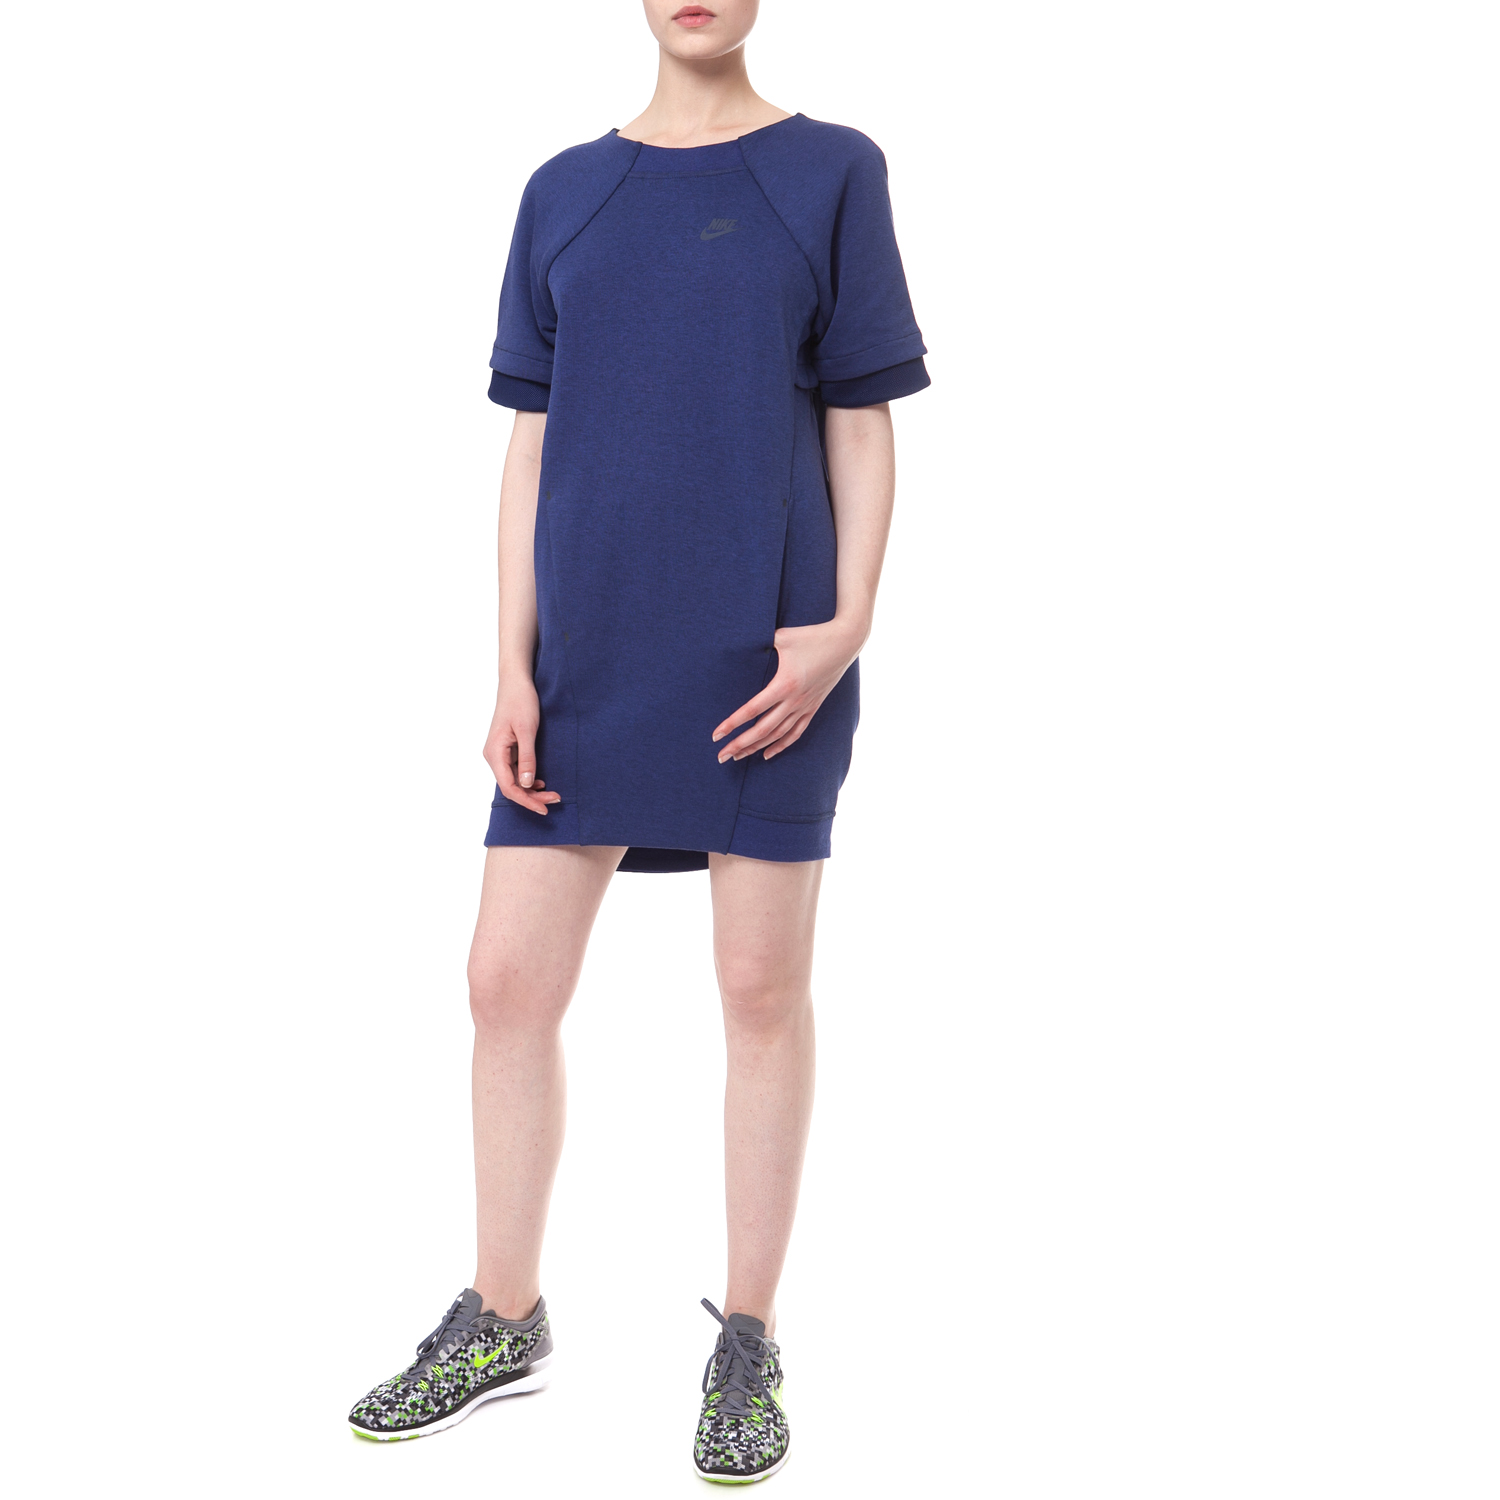 NIKE - Φόρεμα Nike TECH FLEECE DRESS-MESH μπλε μίνι